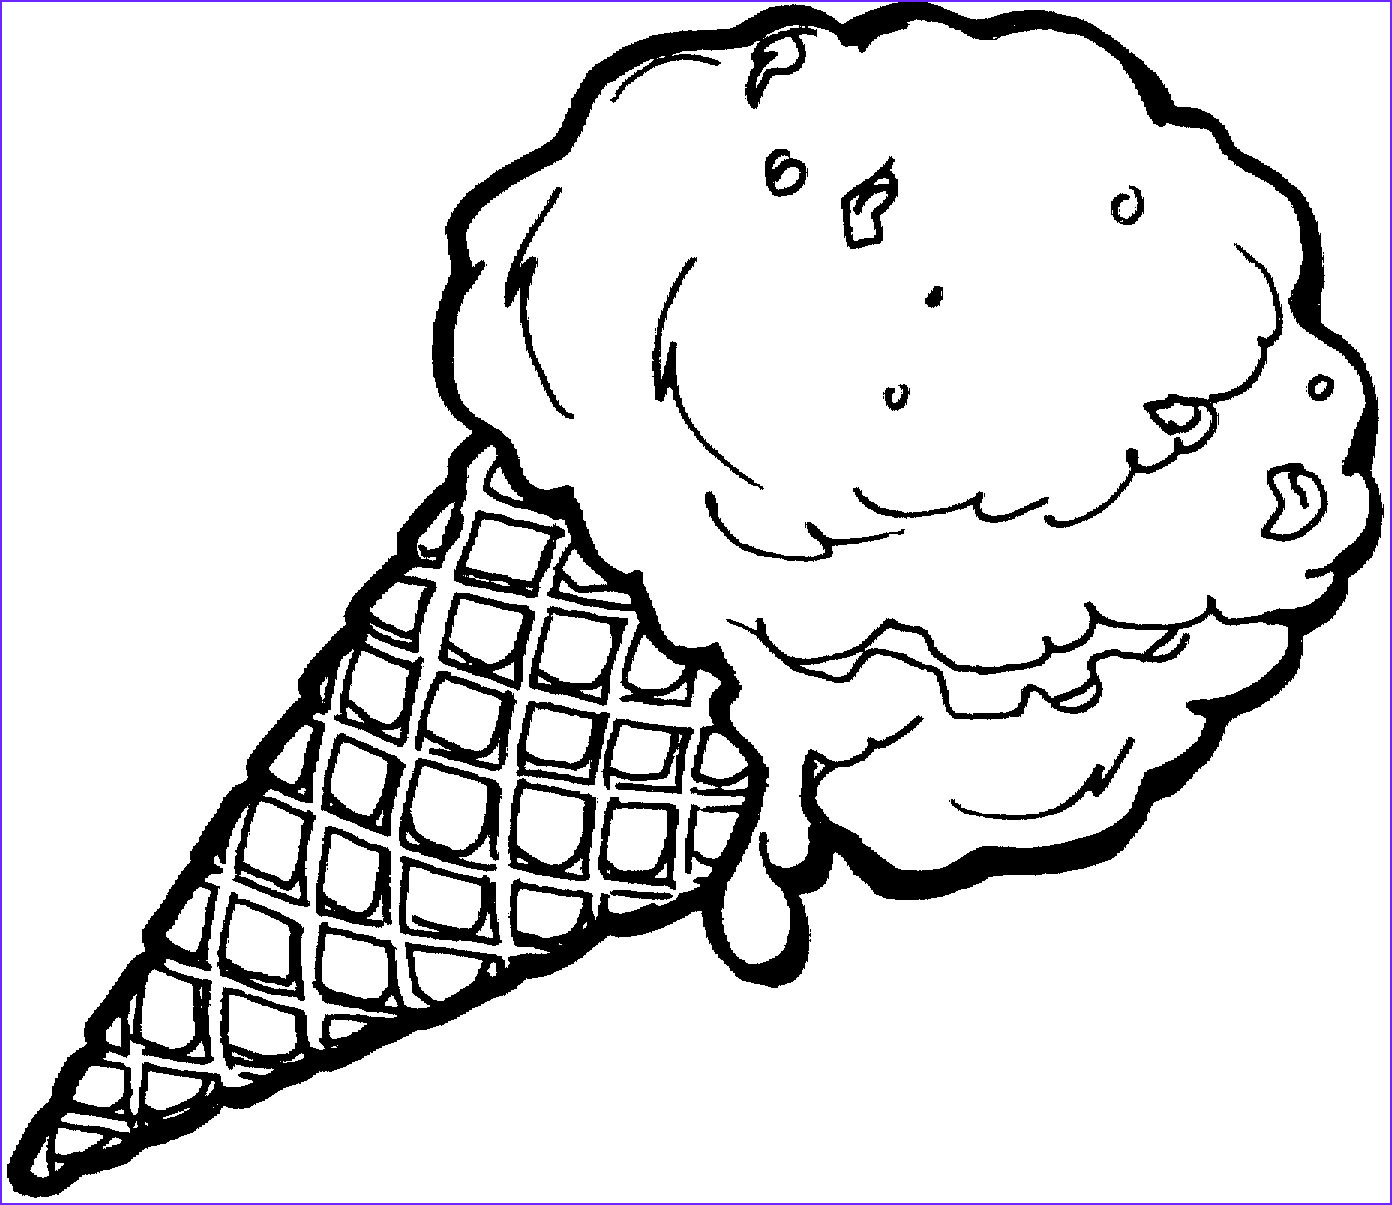 Icecream Cone Coloring Pages Unique Photography Ice Cream Coloring Pages